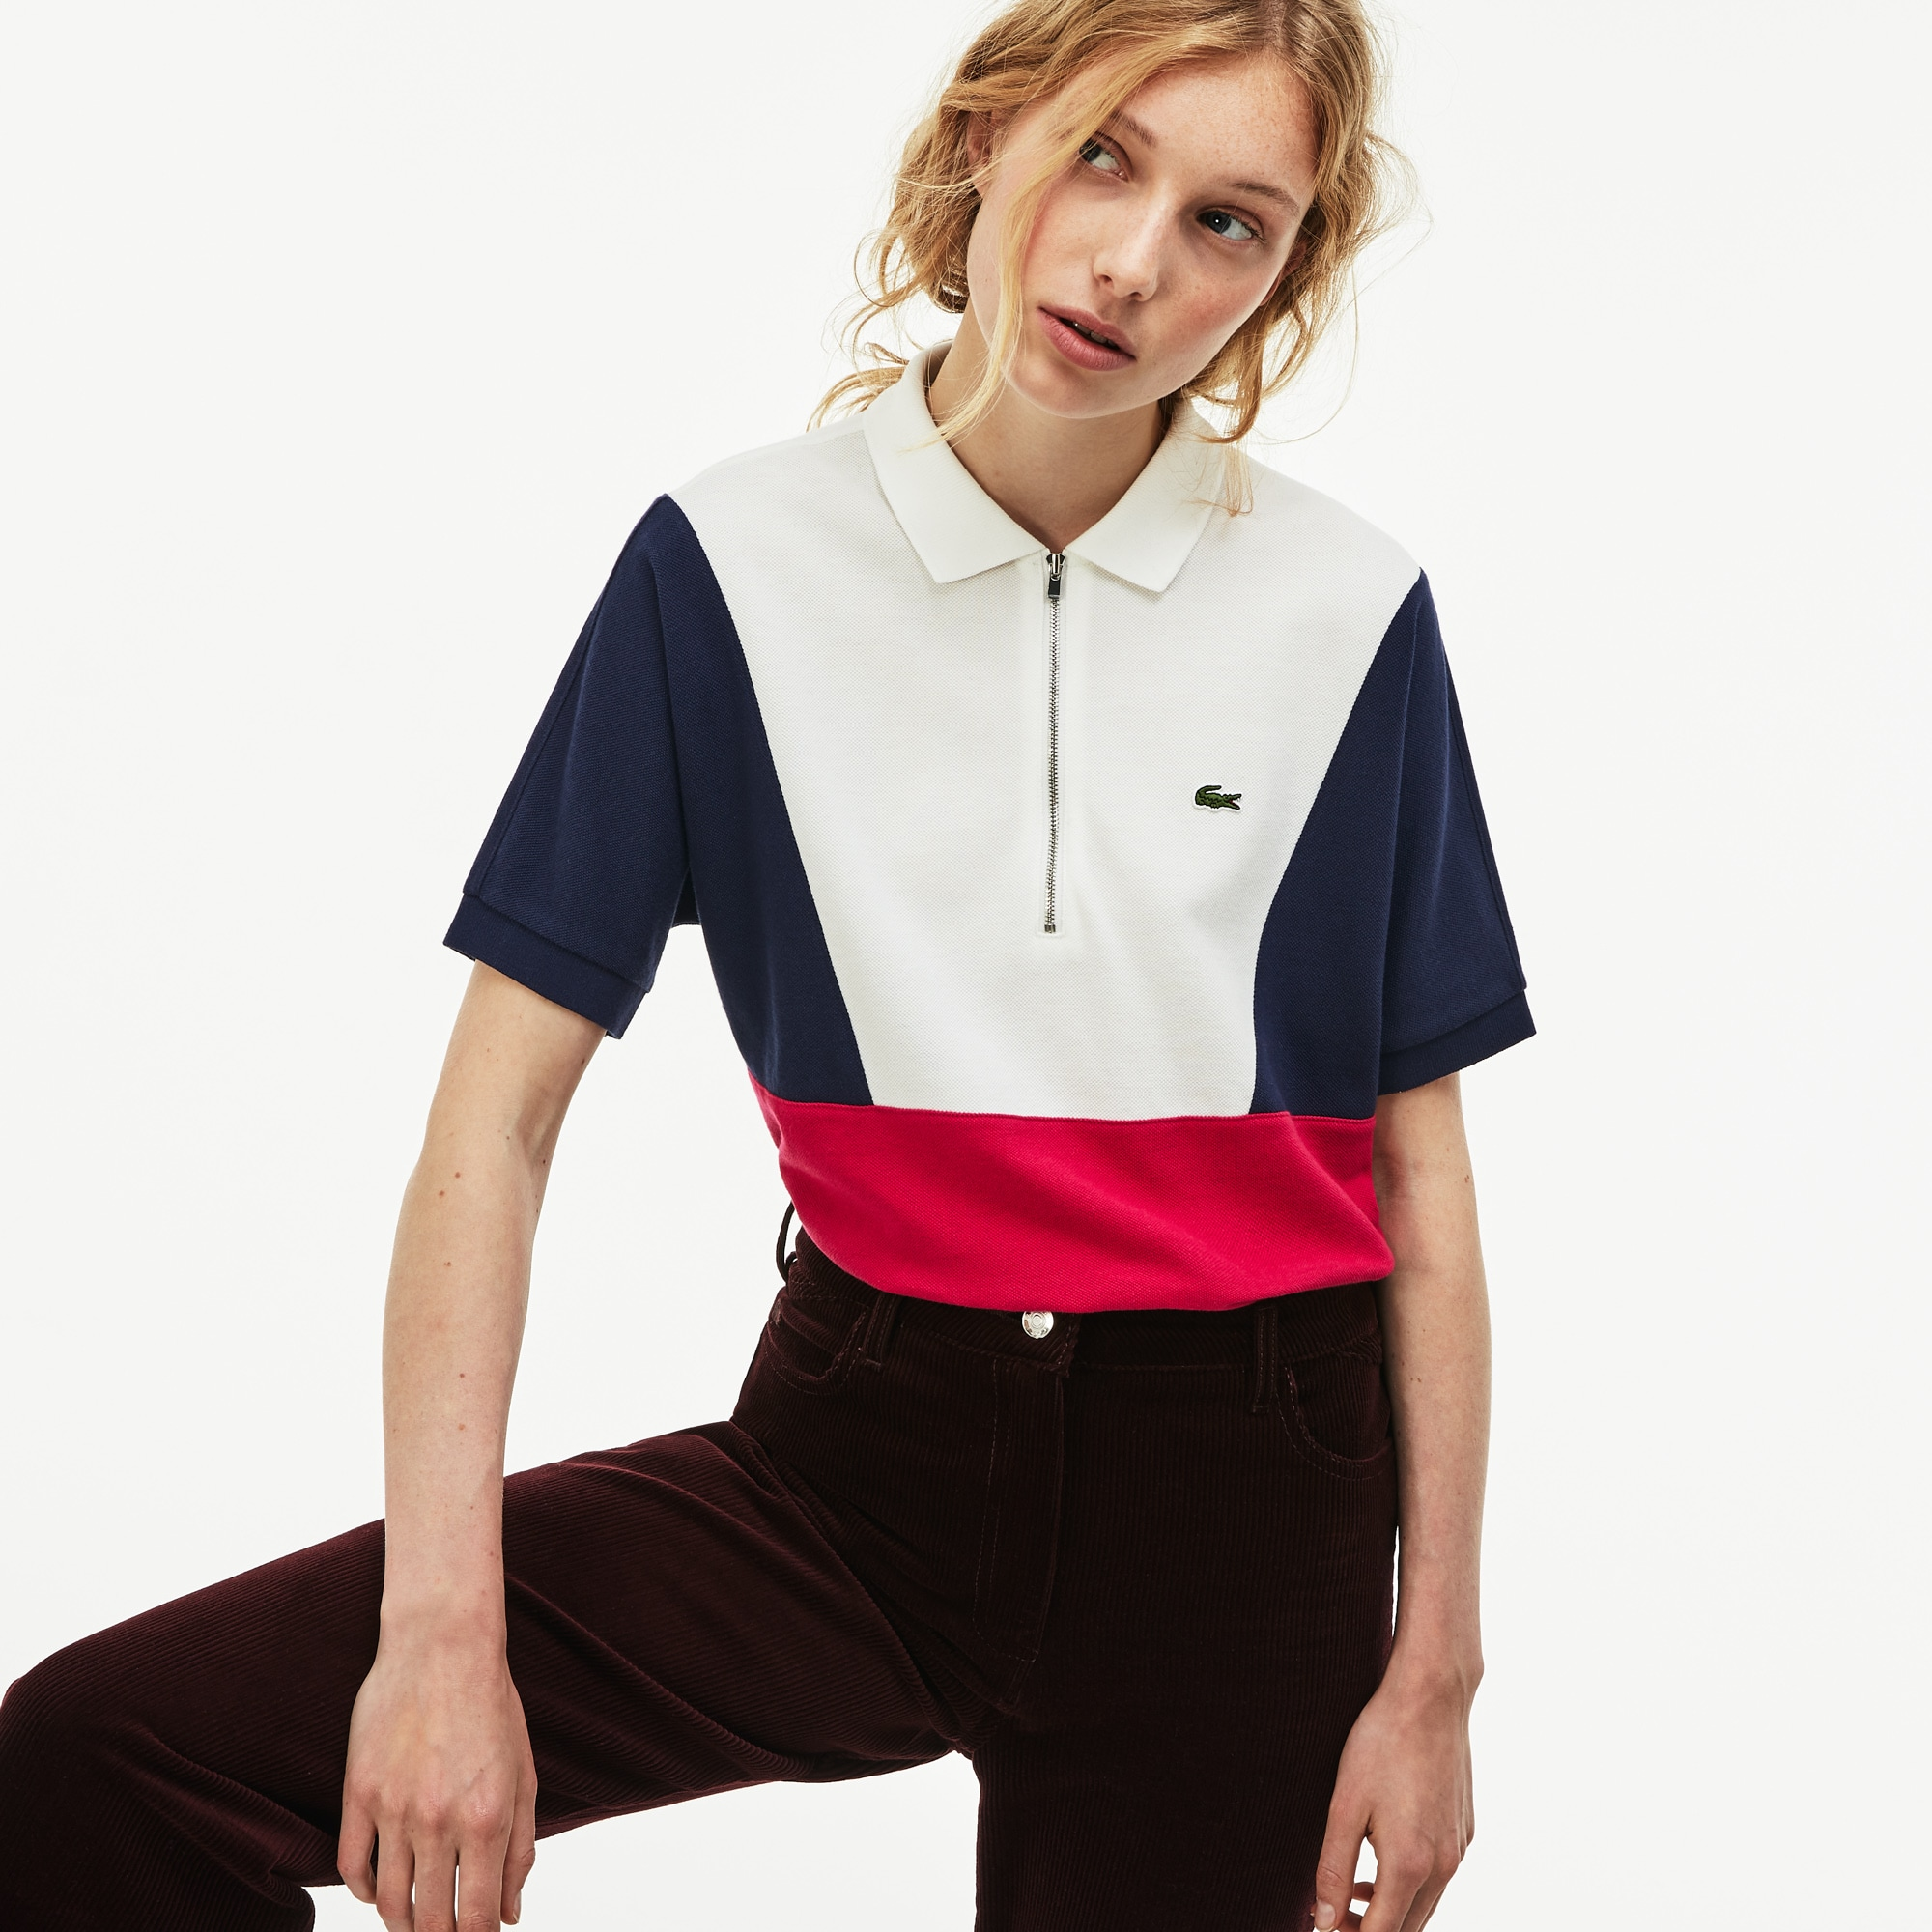 Lacoste Women's Zip Neck Colorblock Terrycloth PiquÉ Polo In White / Navy Blue / Red